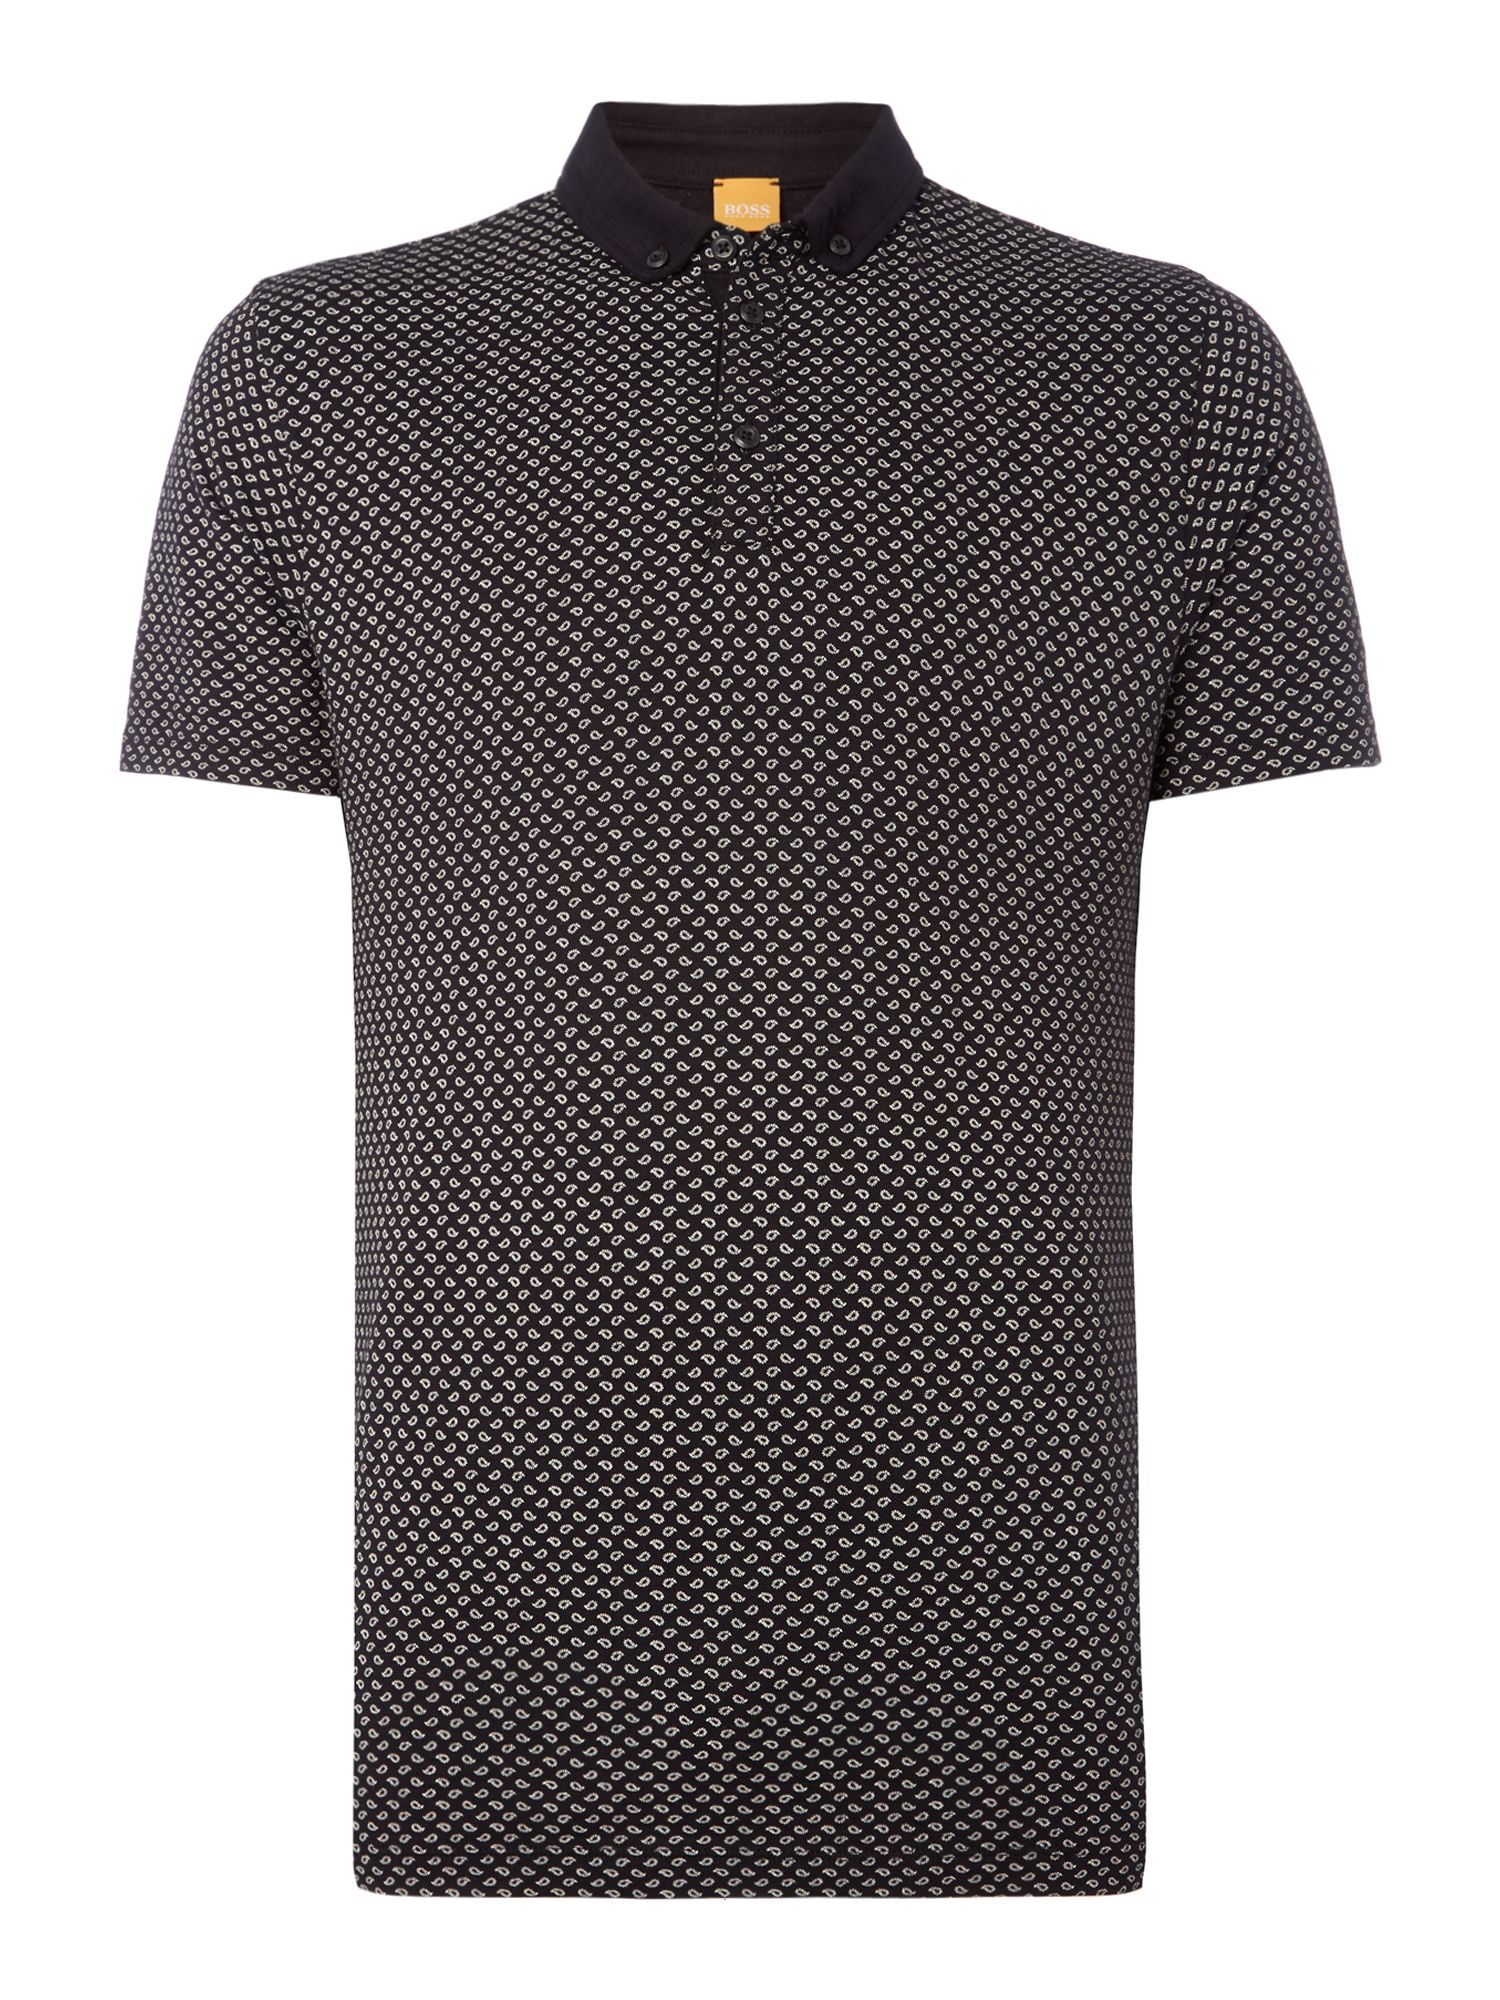 Men's Hugo Boss Perhaps mini paisley print polo, Black